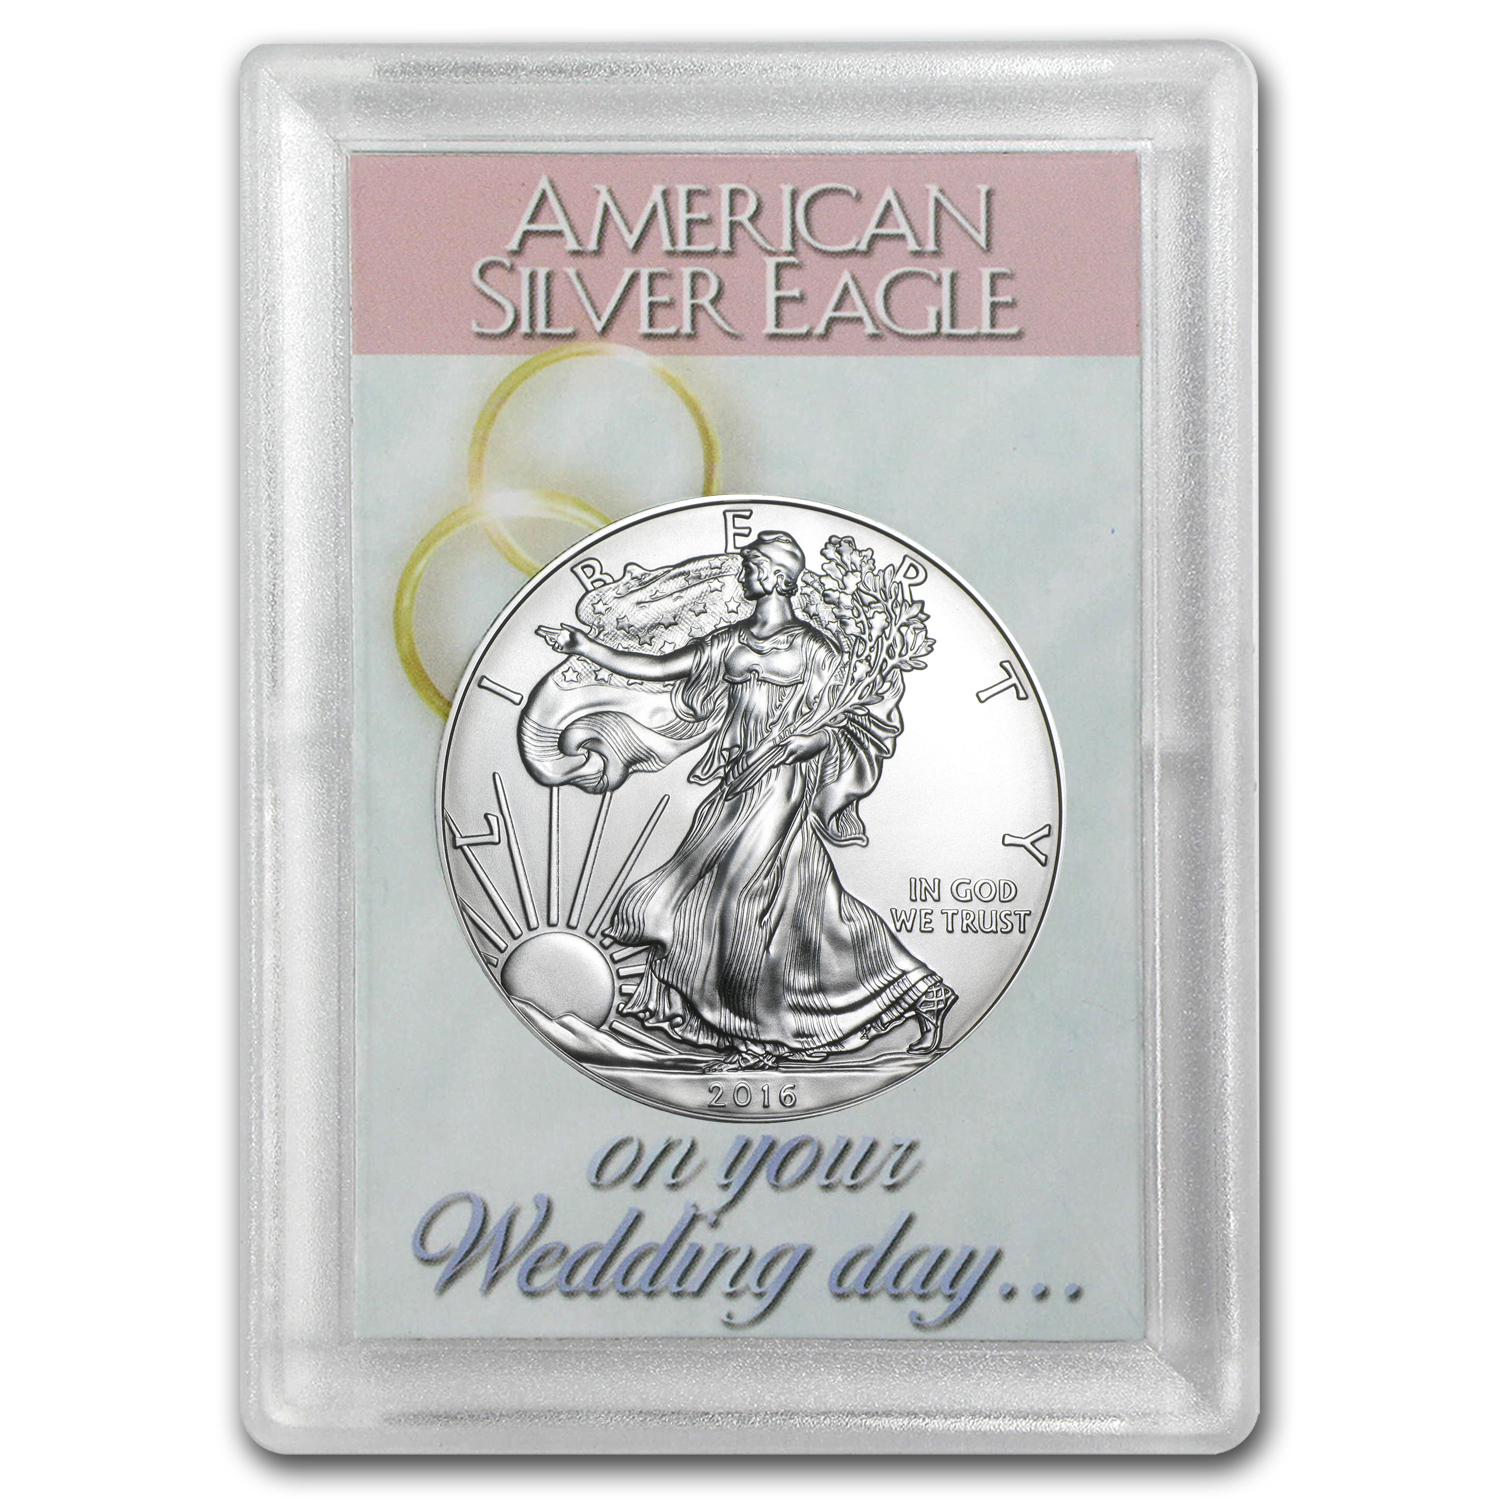 2016 1 oz Silver American Eagle BU (Wedding Day, Harris Holder)